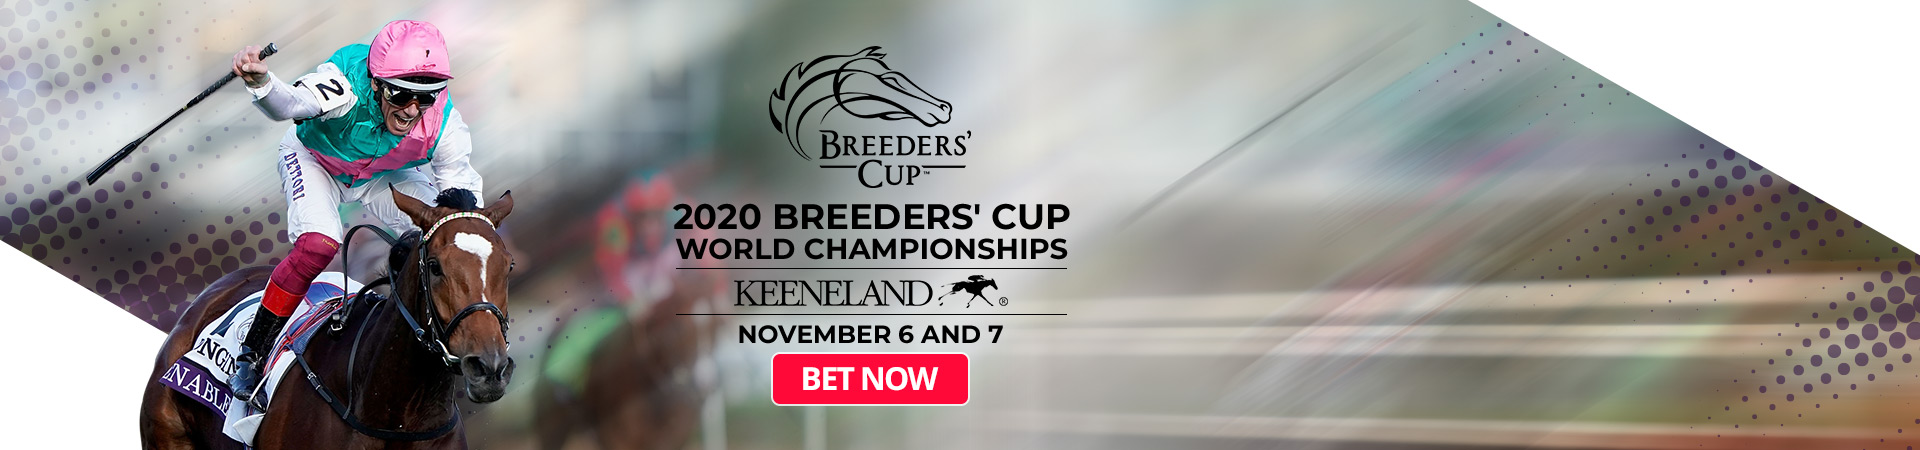 Breeders' Cup 2020